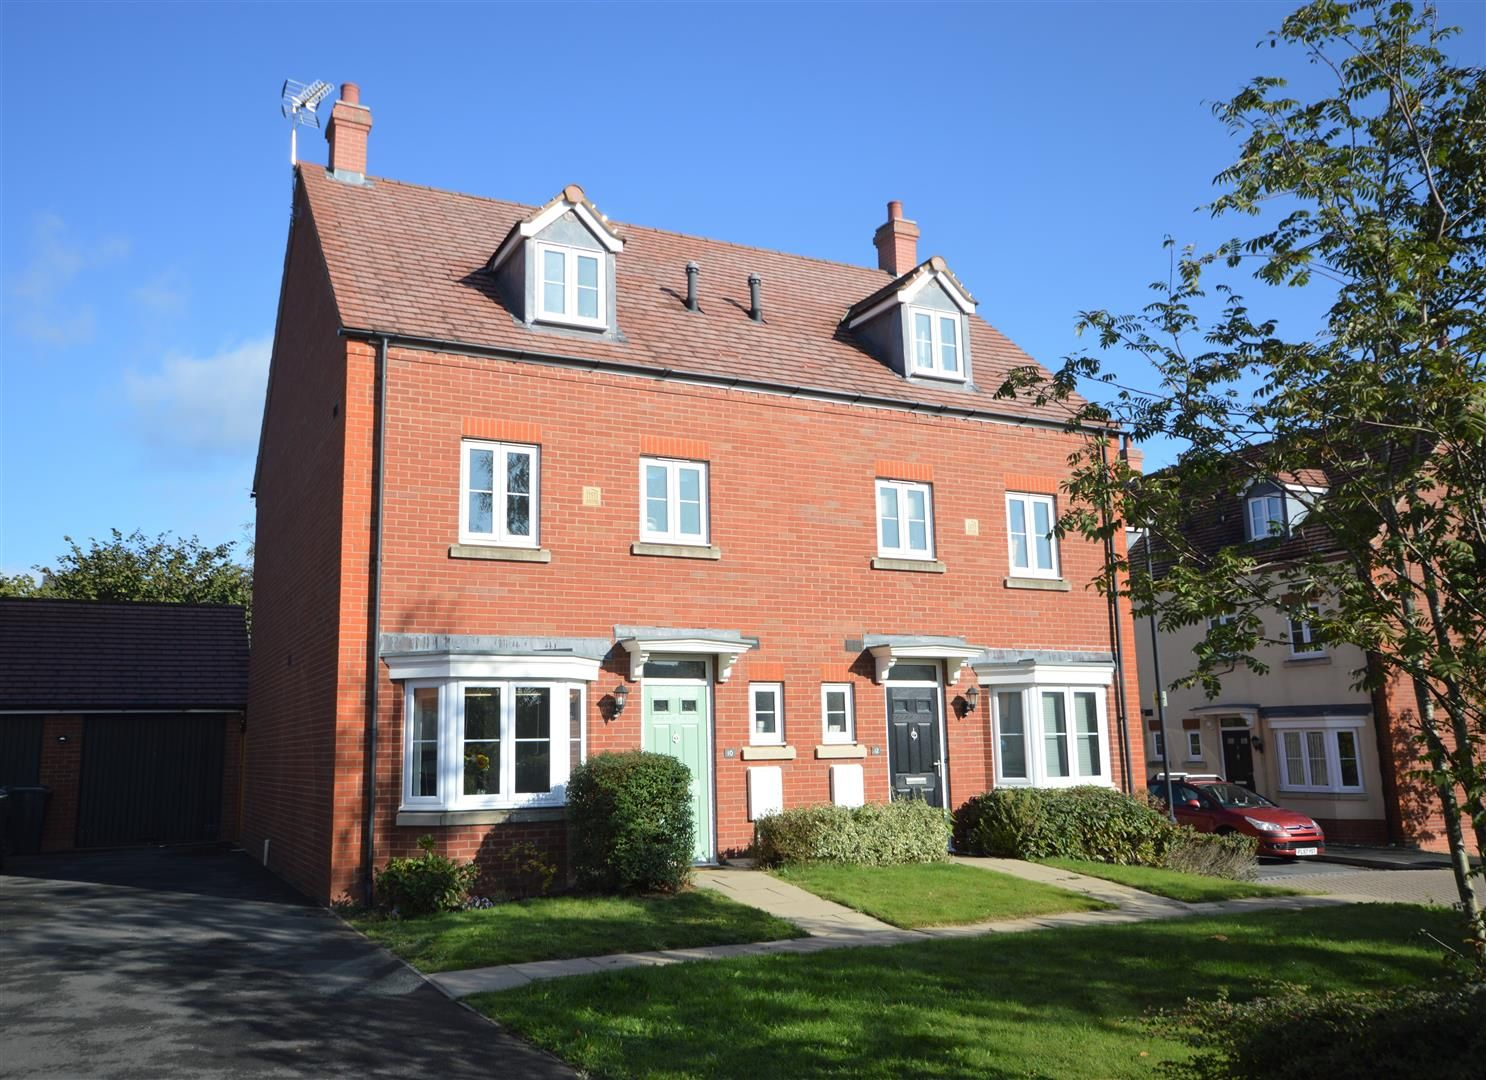 4 bed semi-detached for sale in Leominster  - Property Image 1